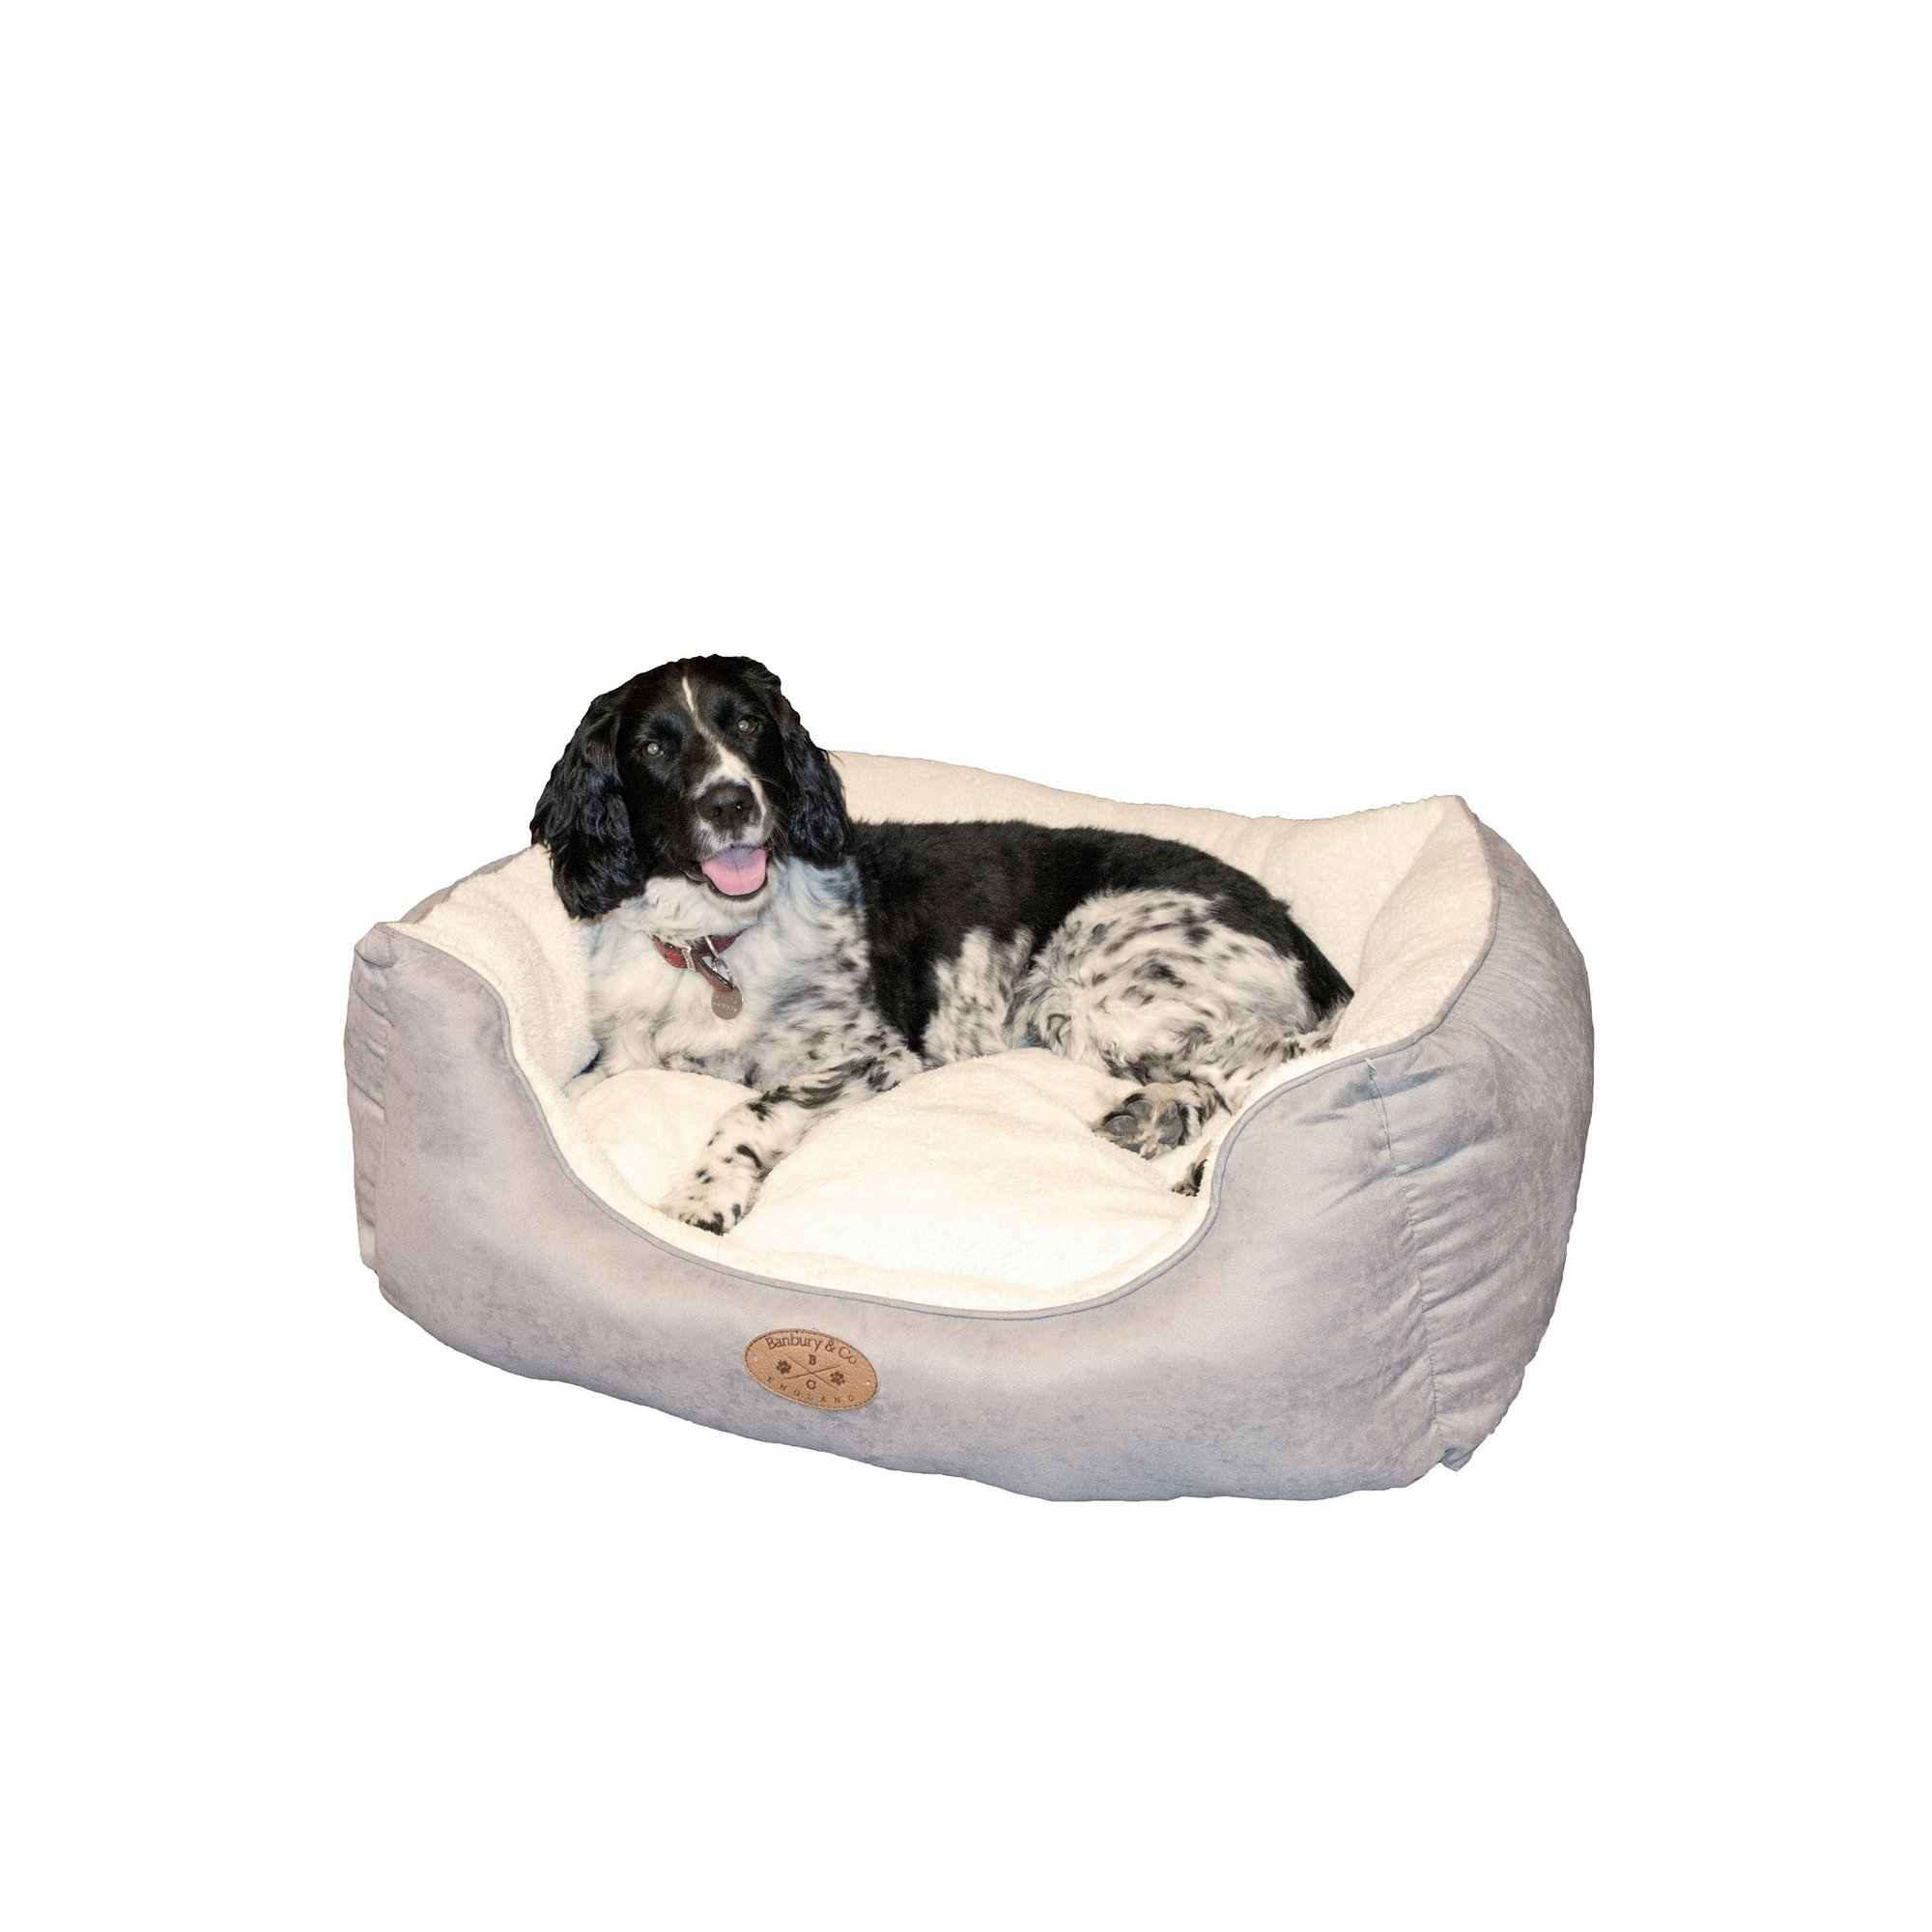 Image of Banbury and Co Luxury Dog Sofa Bed